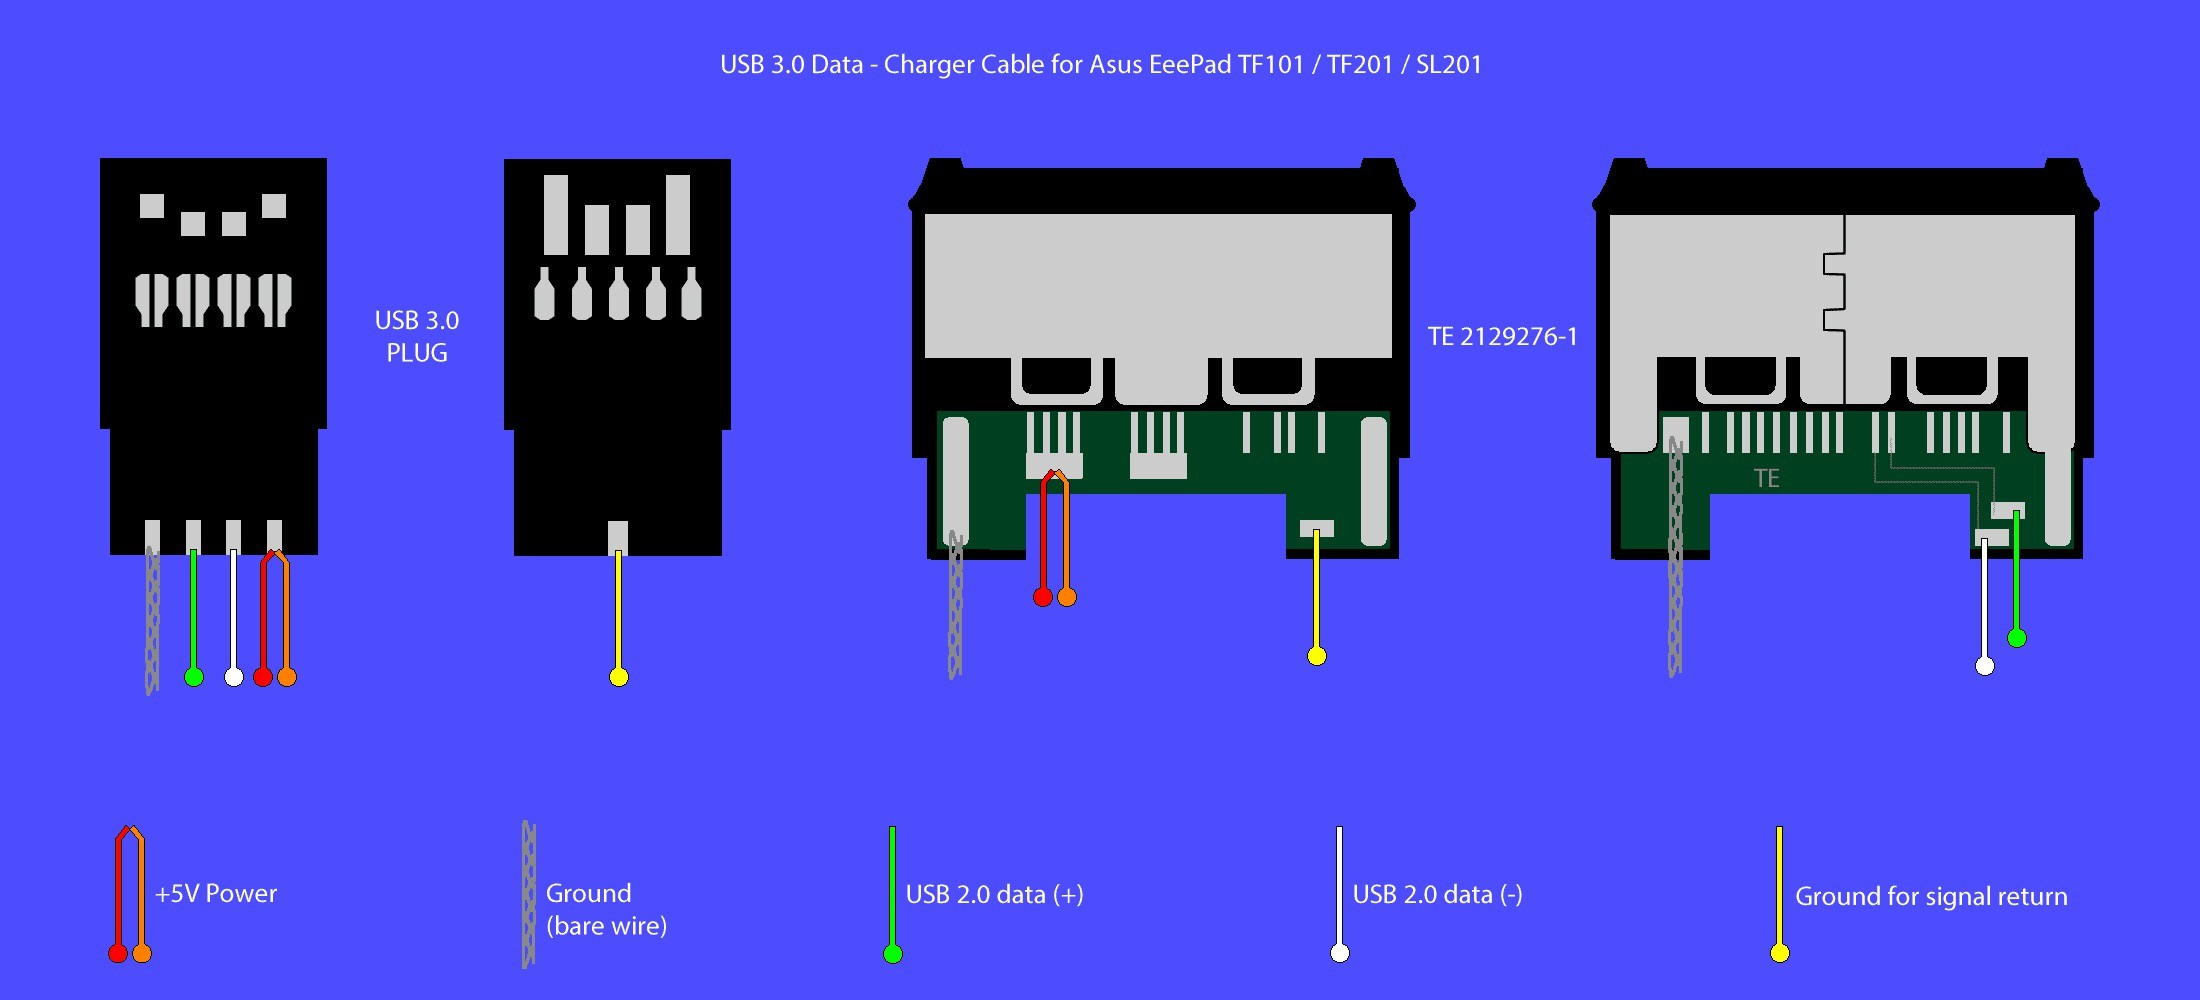 Sata Cable Wiring Diagram | Wiring Library - Sata To Usb Cable Wiring Diagram